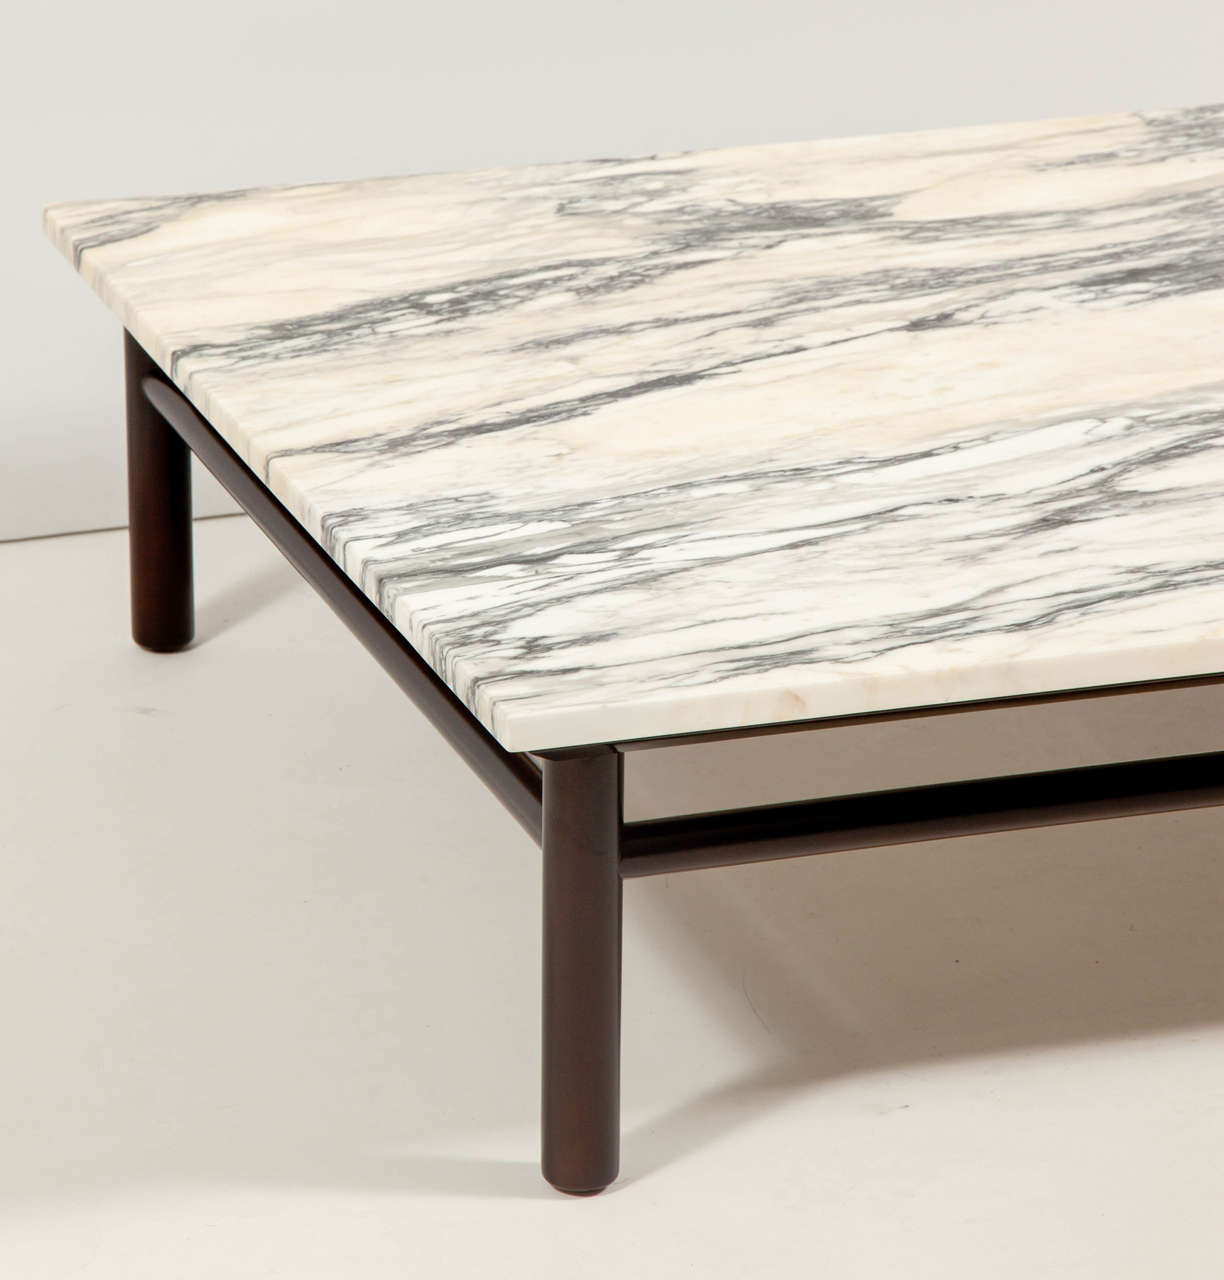 Walnut and marble coffee table by robsjohn gibbings at 1stdibs for Marble and walnut coffee table